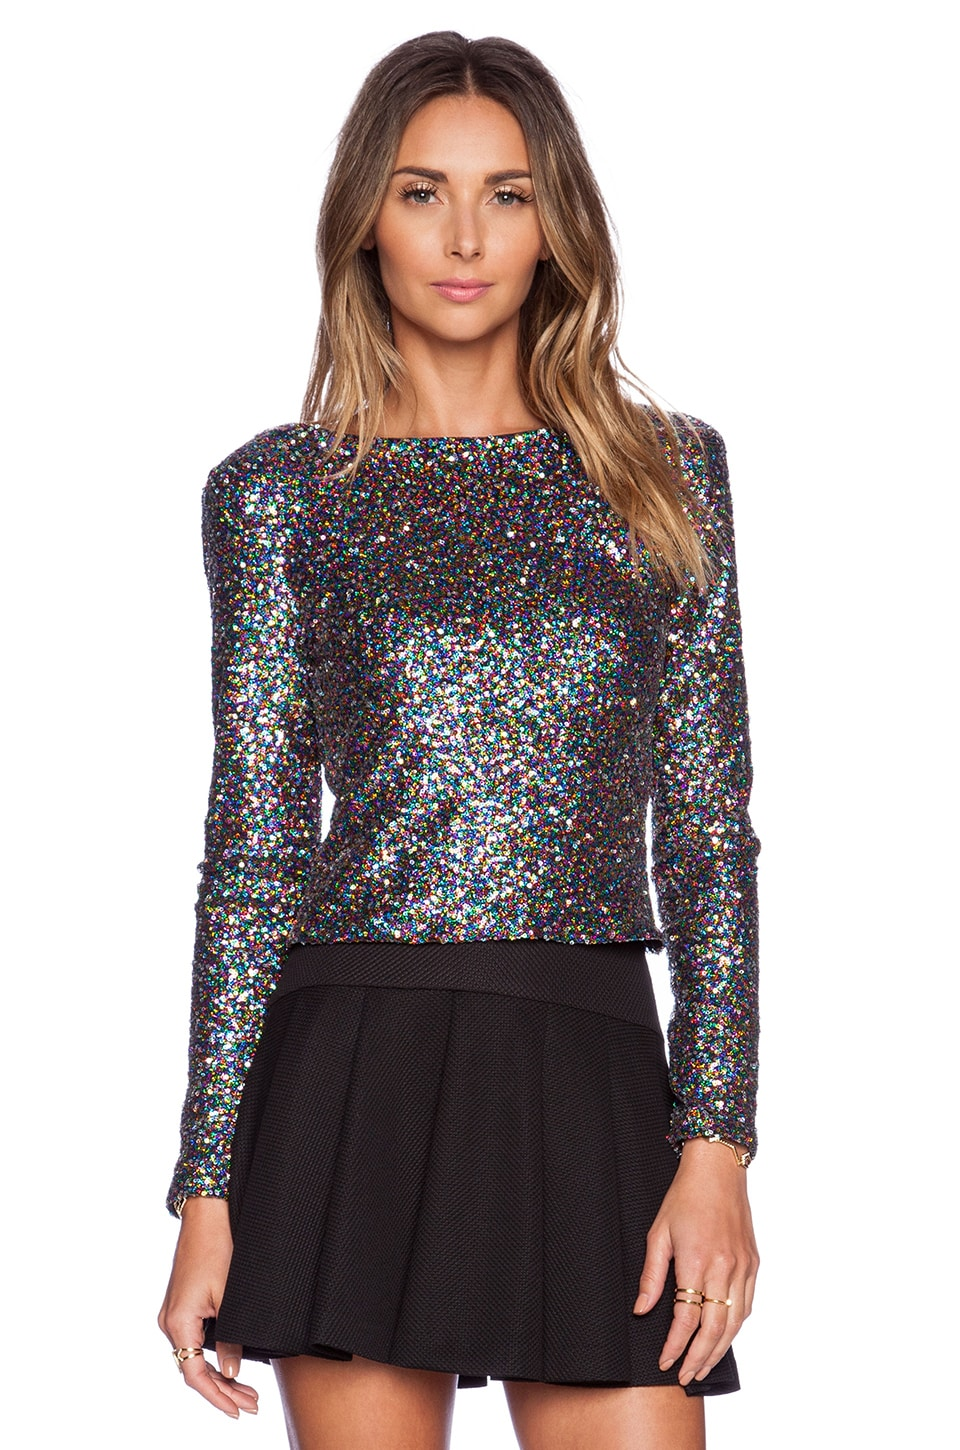 WYLDR First Class Top in Multi